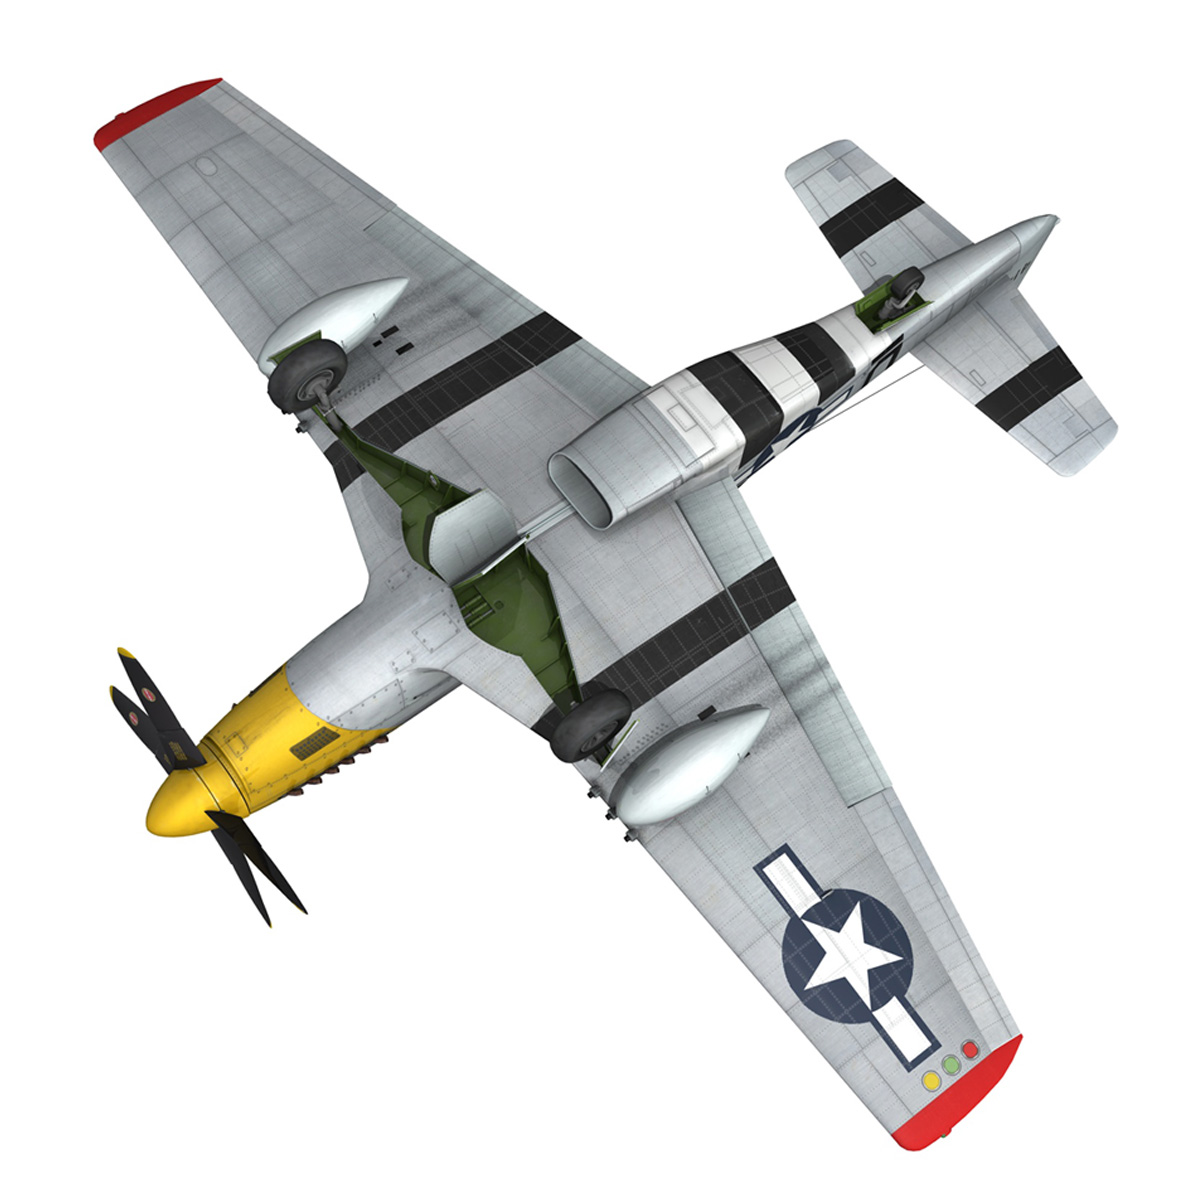 north american p-51d – mustang – detroit miss 3d model 3ds fbx c4d lwo obj 267607